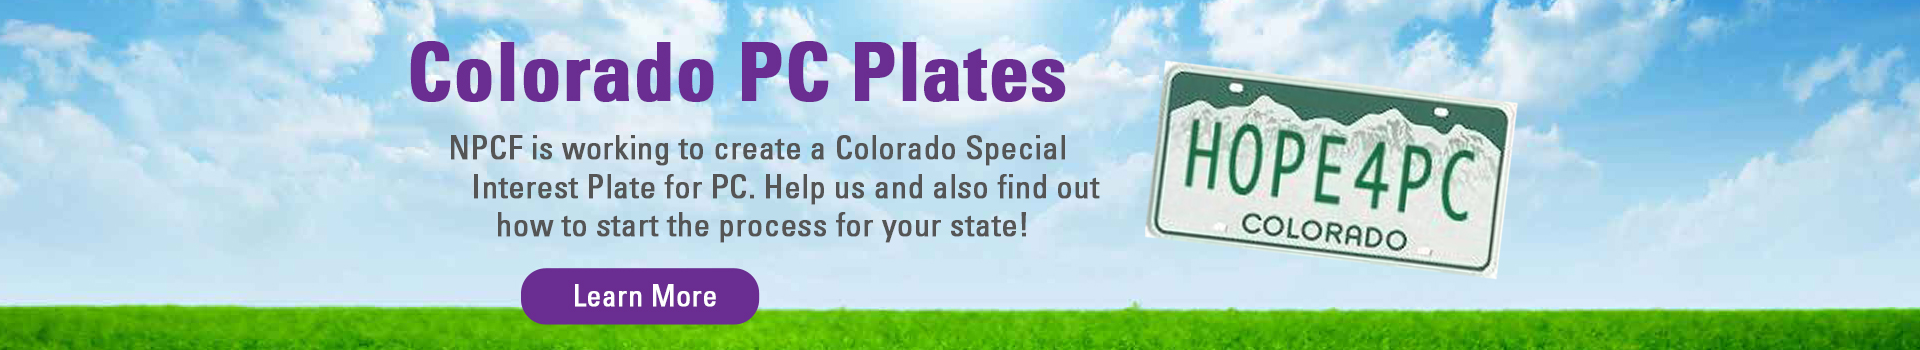 npcf-slider-colorado-license-plate-pc